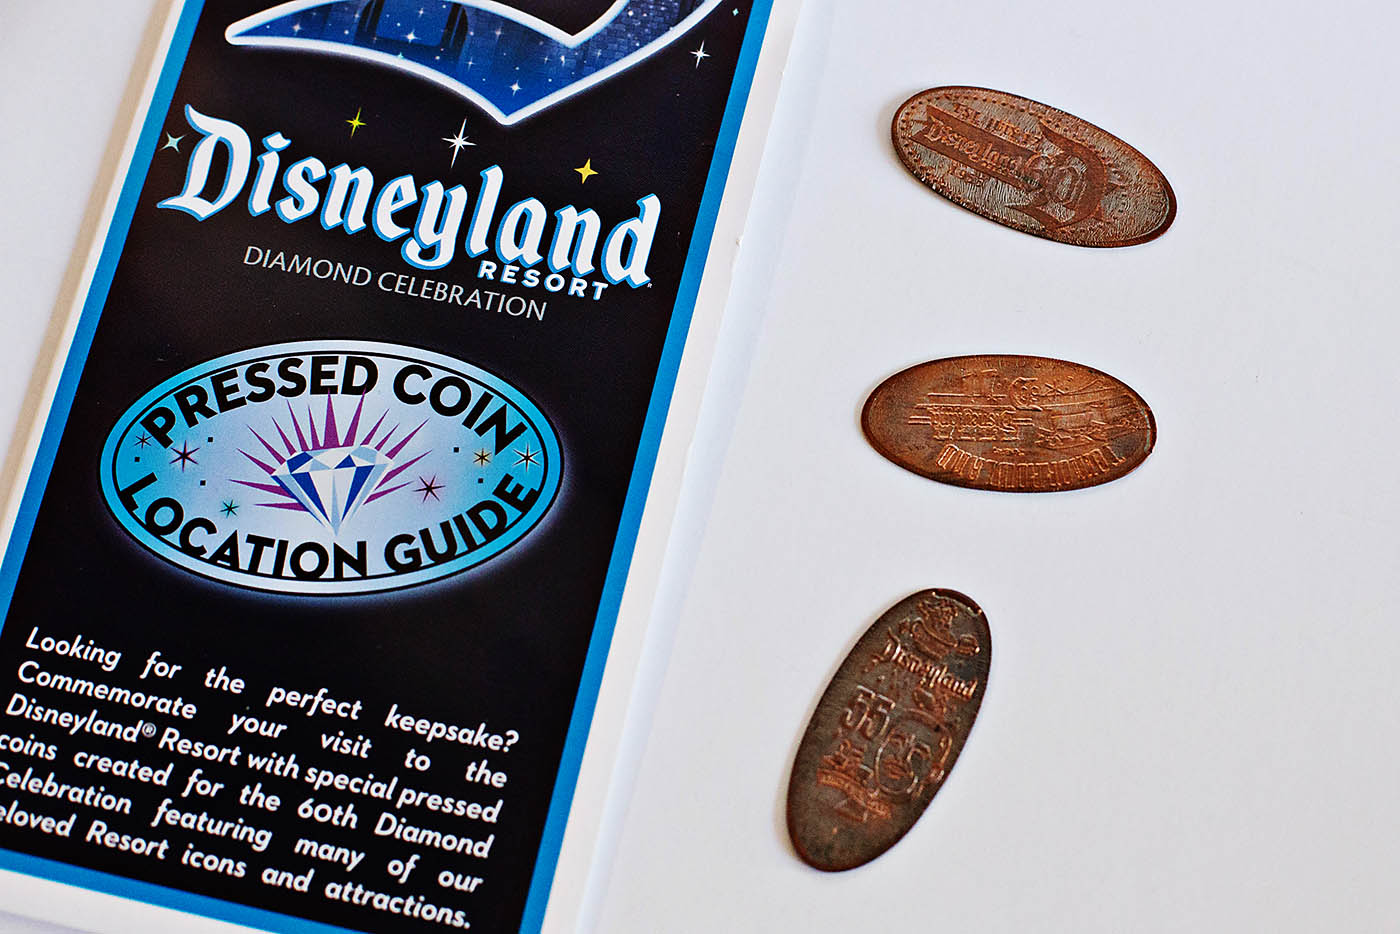 Disneyland Diamond Celebration Pressed Coins